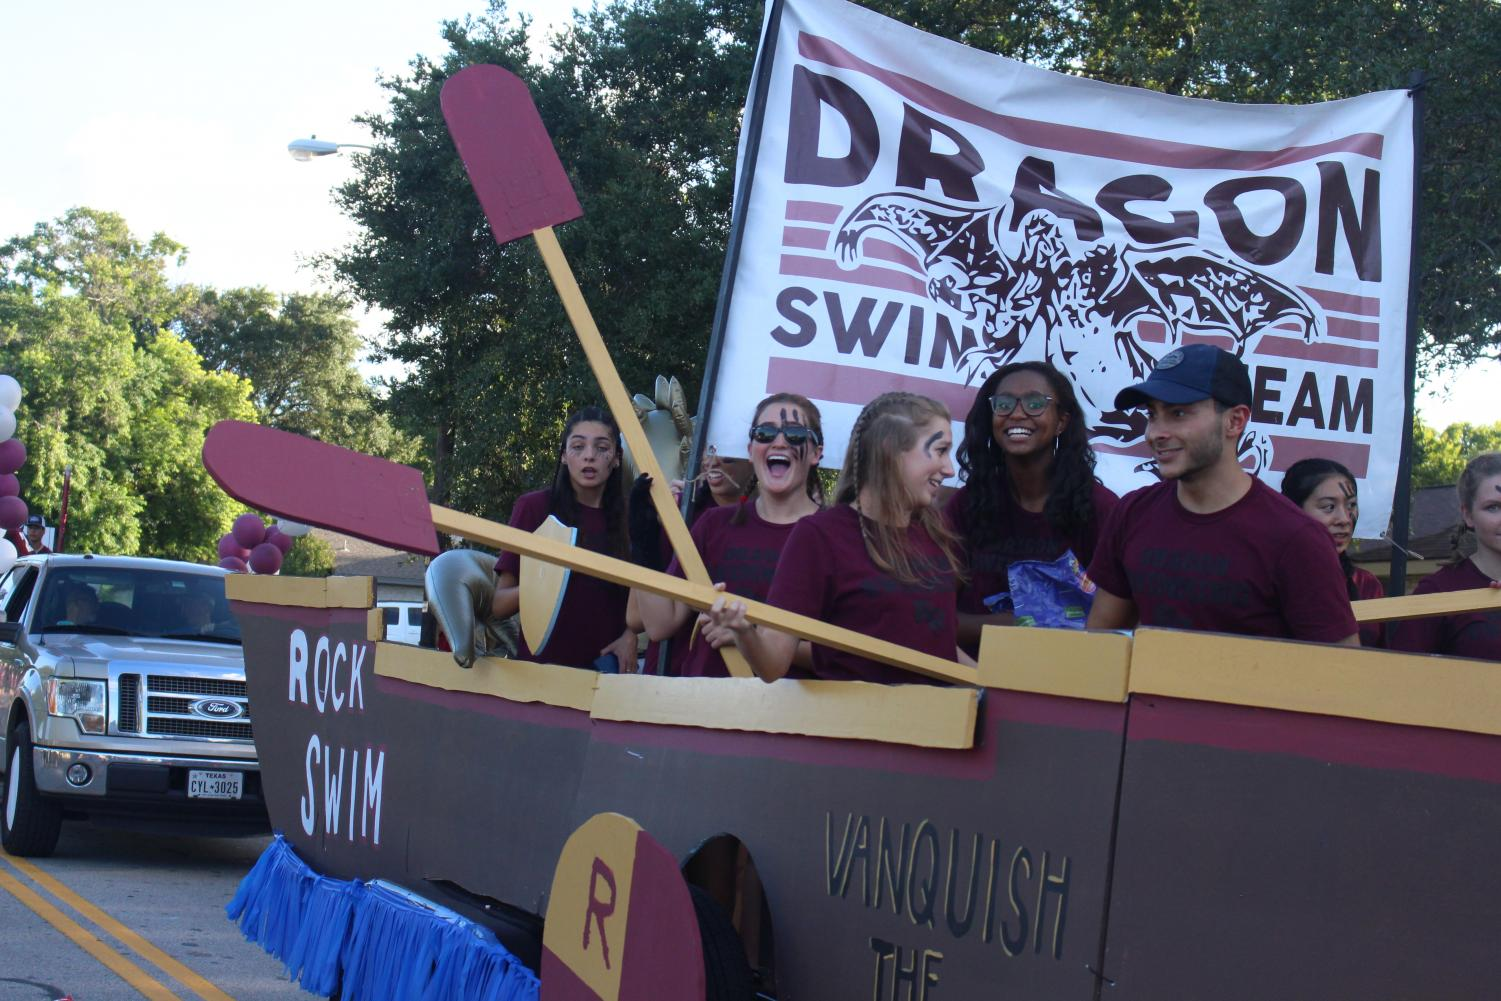 RRHS Swim team. Photo by Abbey Gray